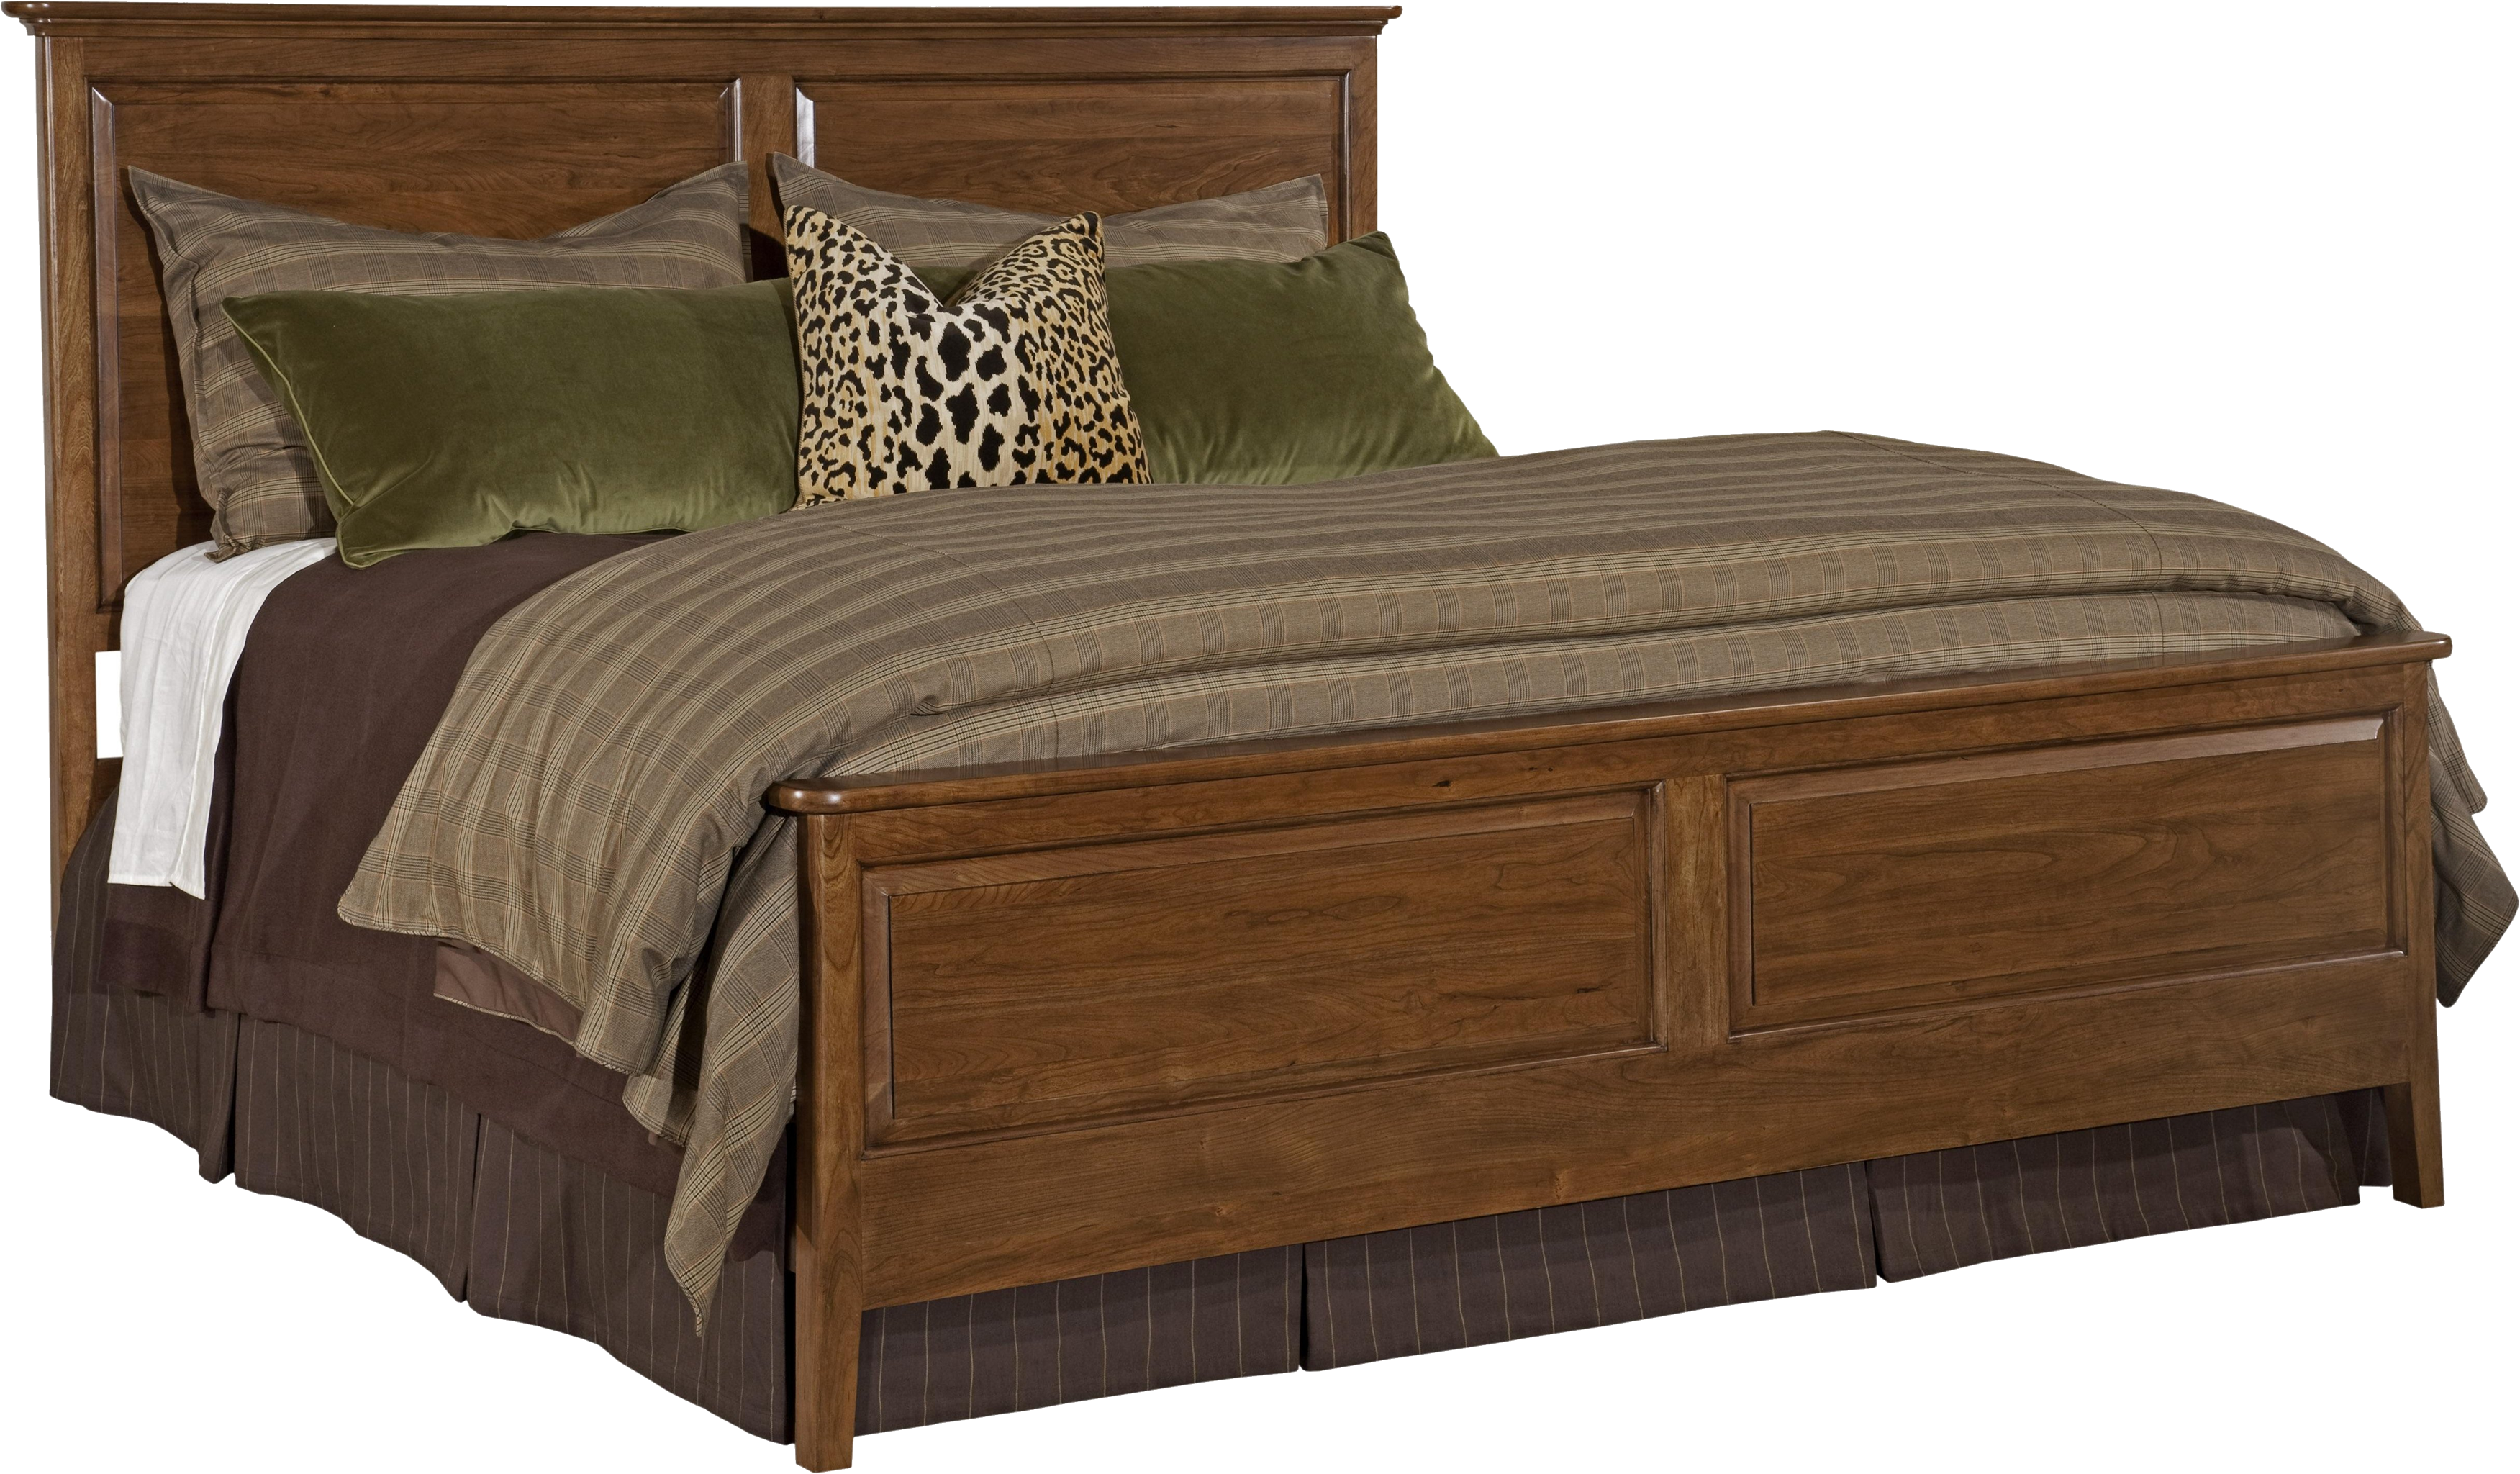 picture free Bedroom clipart bedroom set. Wooden bed free on.